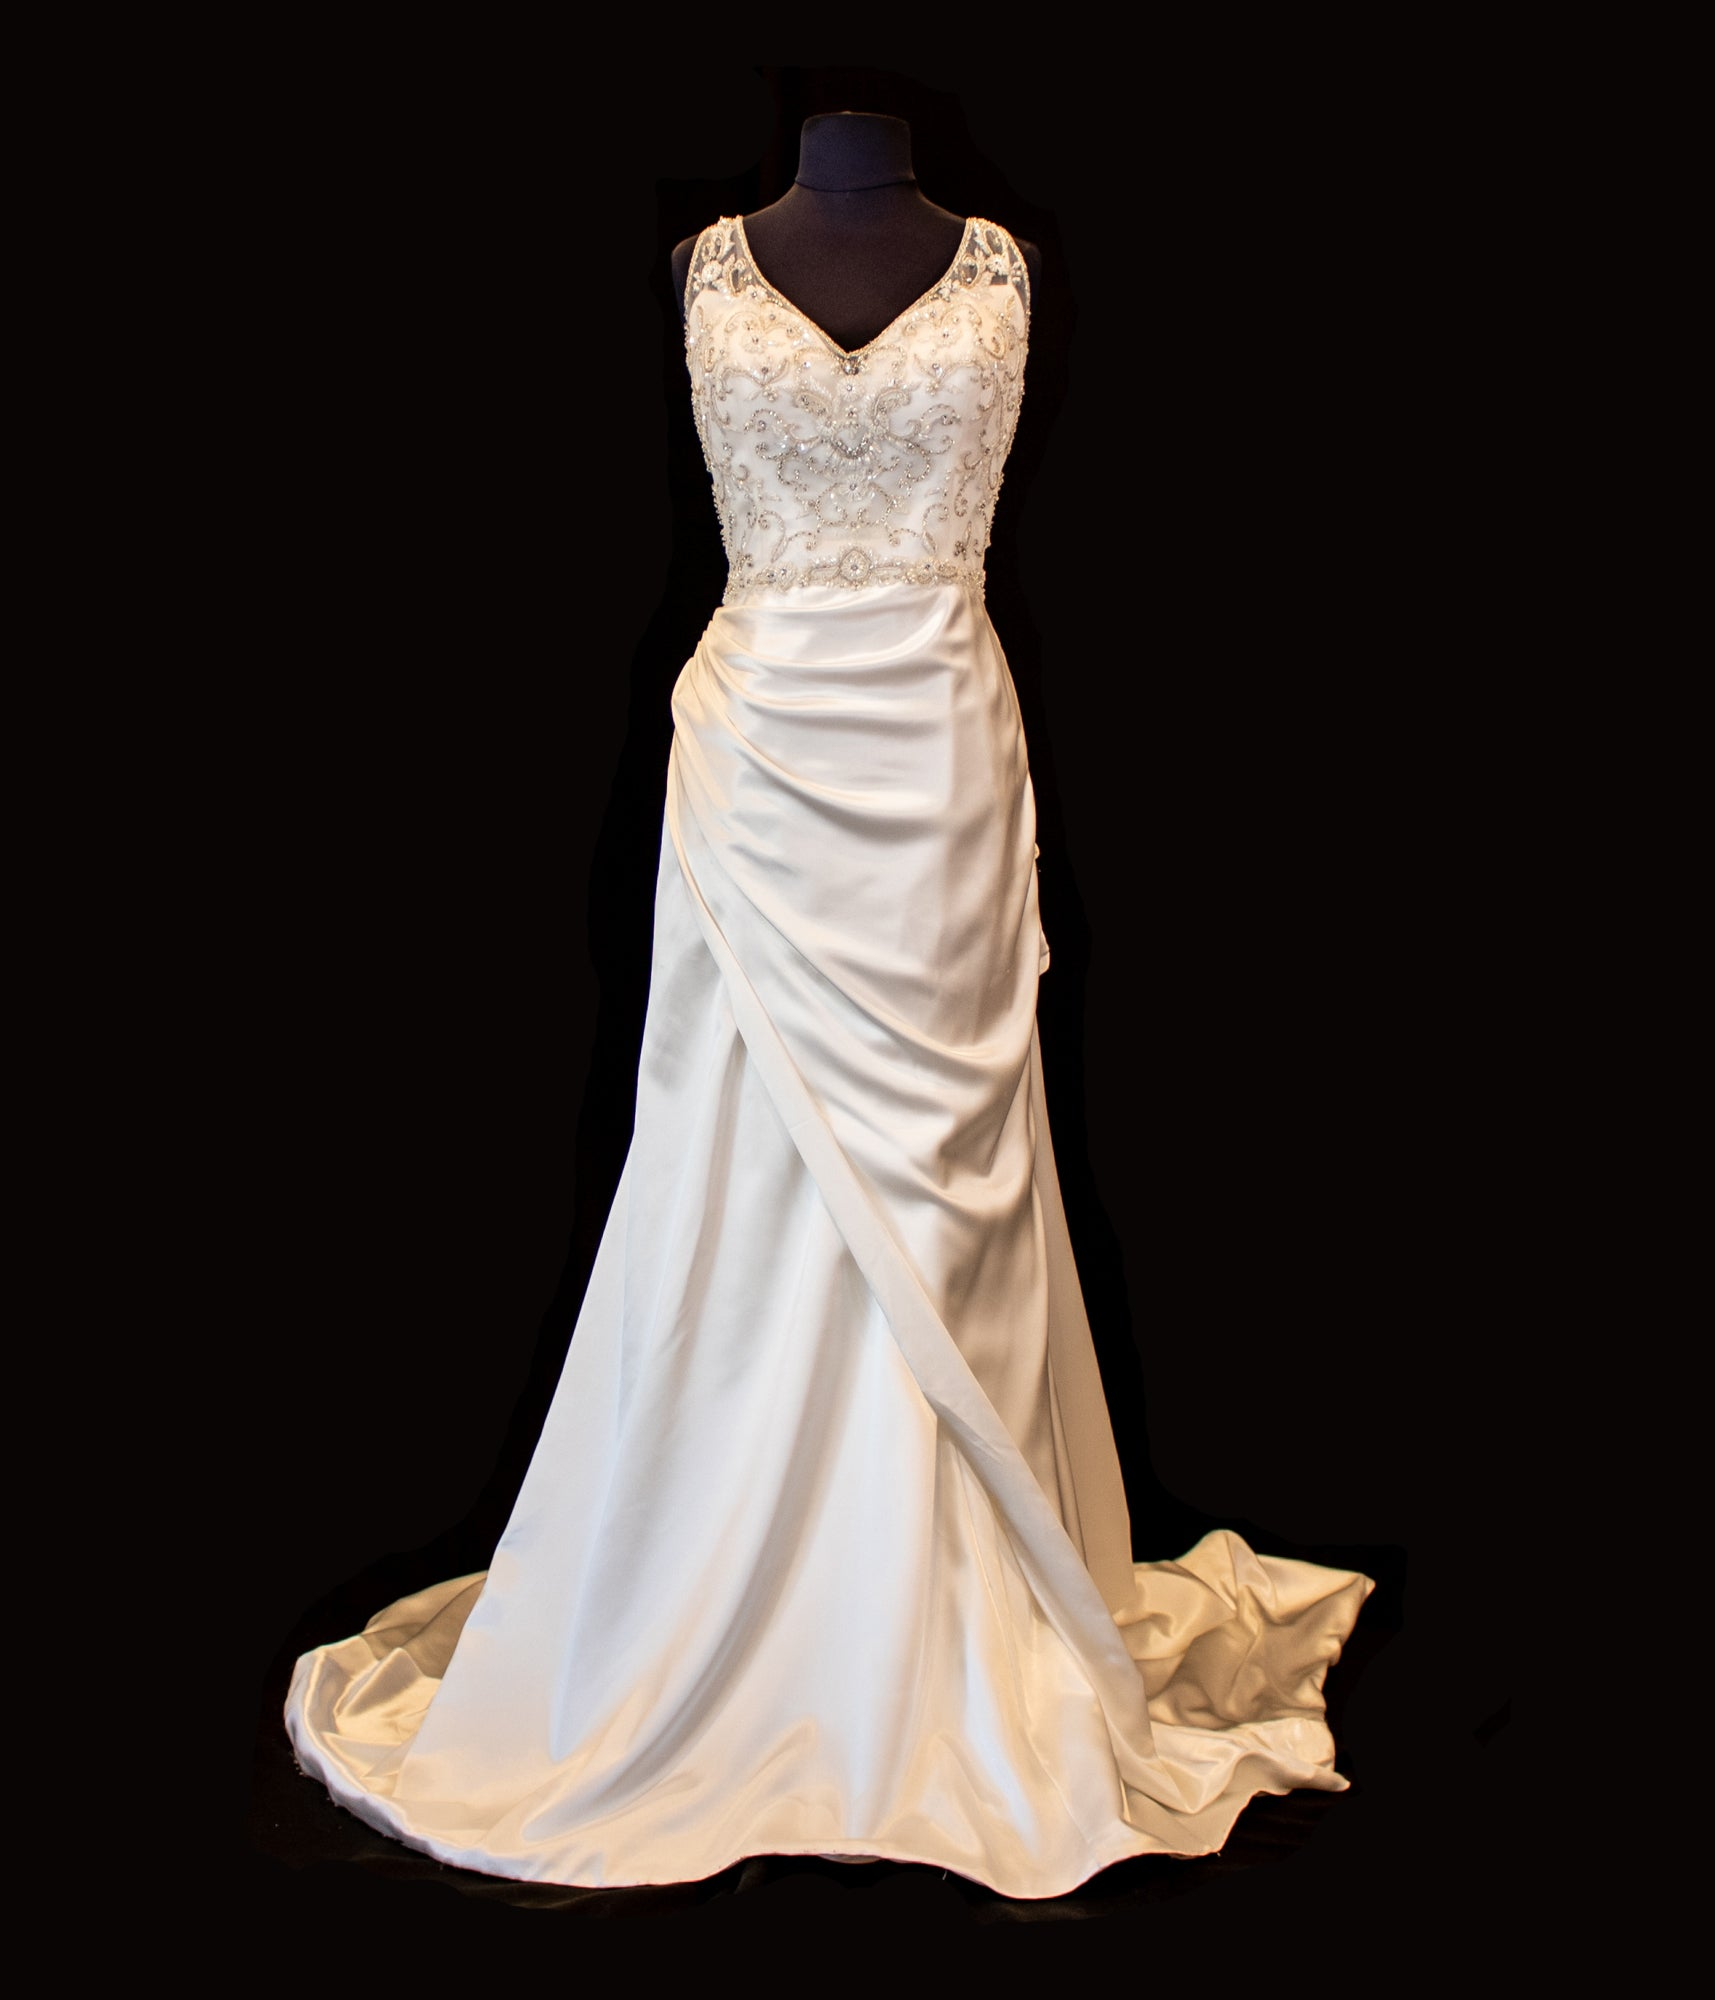 Tiffany Sheth Gown